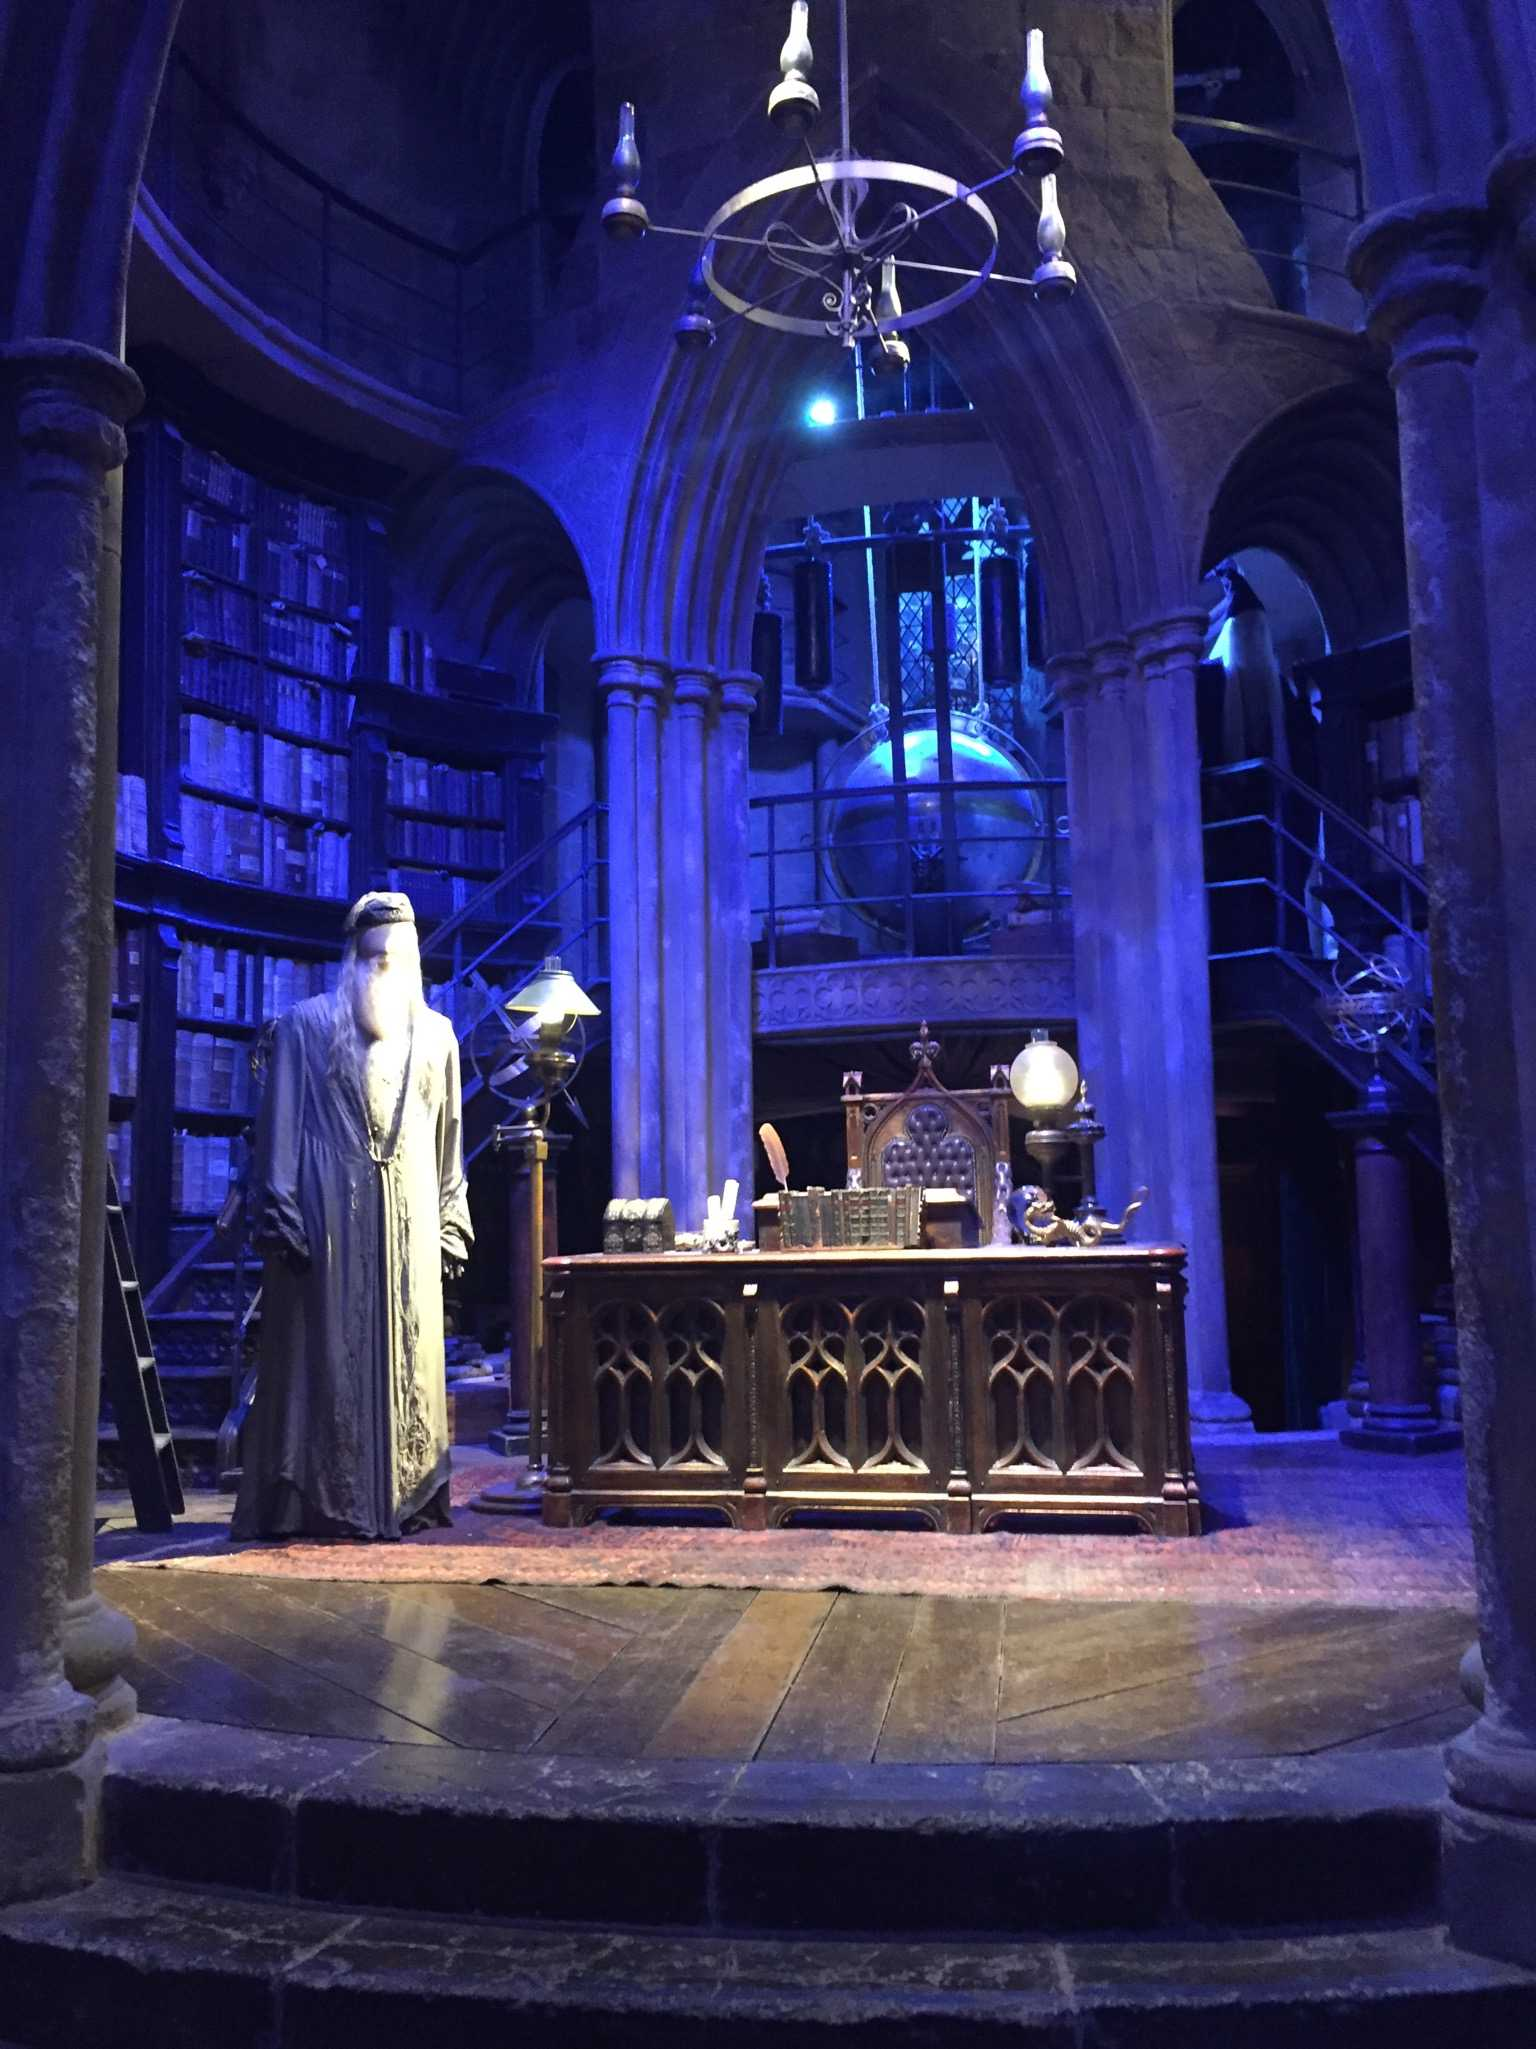 DUMBLEDORE'S OFFICE: Sometimes it's nice to just stop by and talk to the paintings of all of the former headmasters on the walls. Or look into someone's memories with the Pensieve. Your choice.